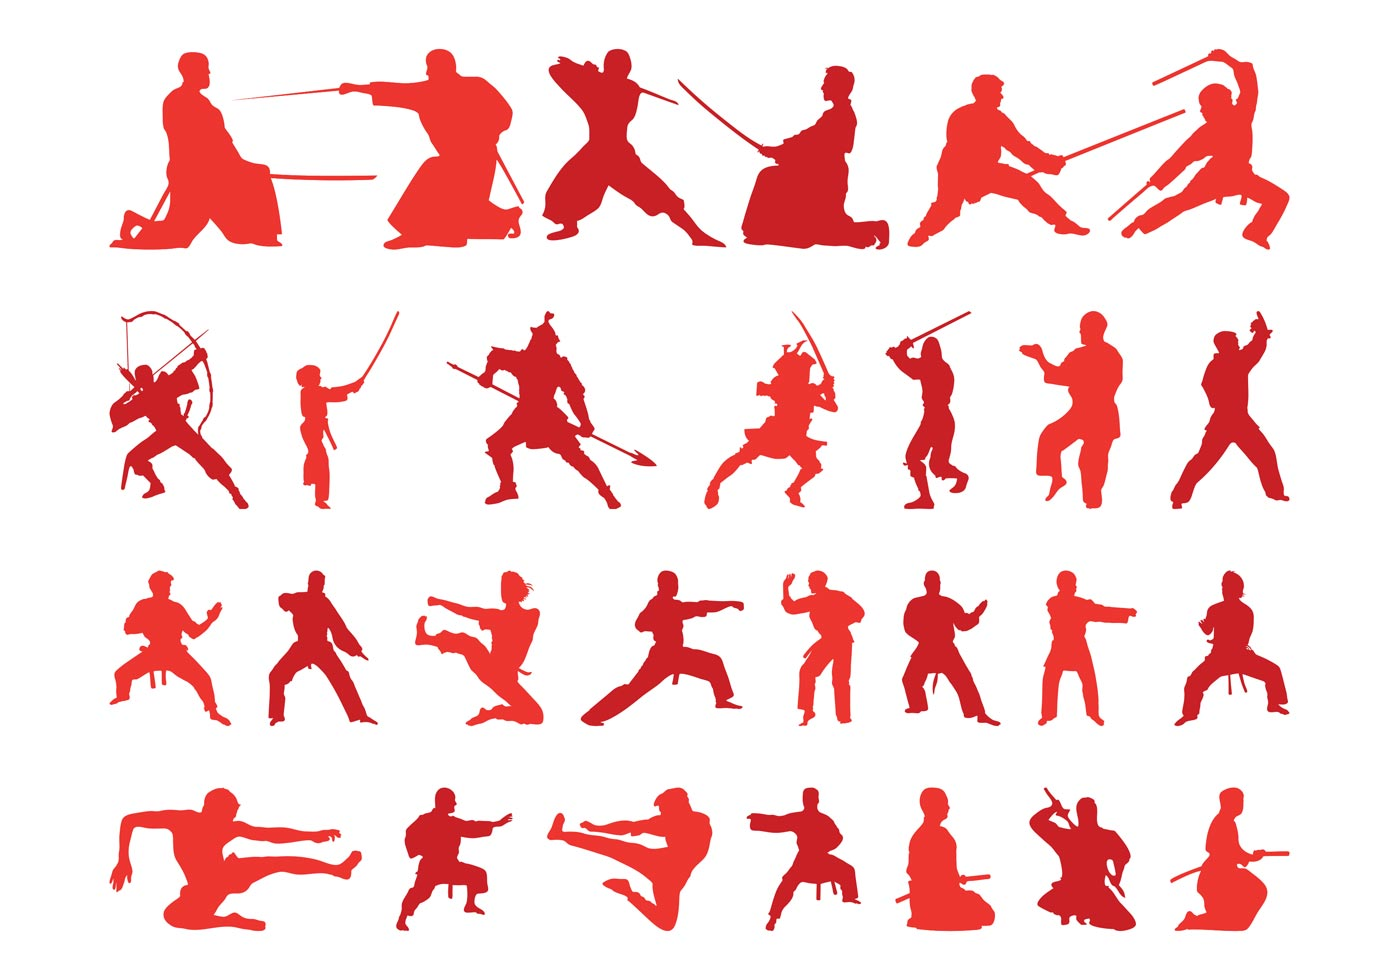 Self Stick Paper Martial Arts Silhouettes Download Free Vector Art Stock